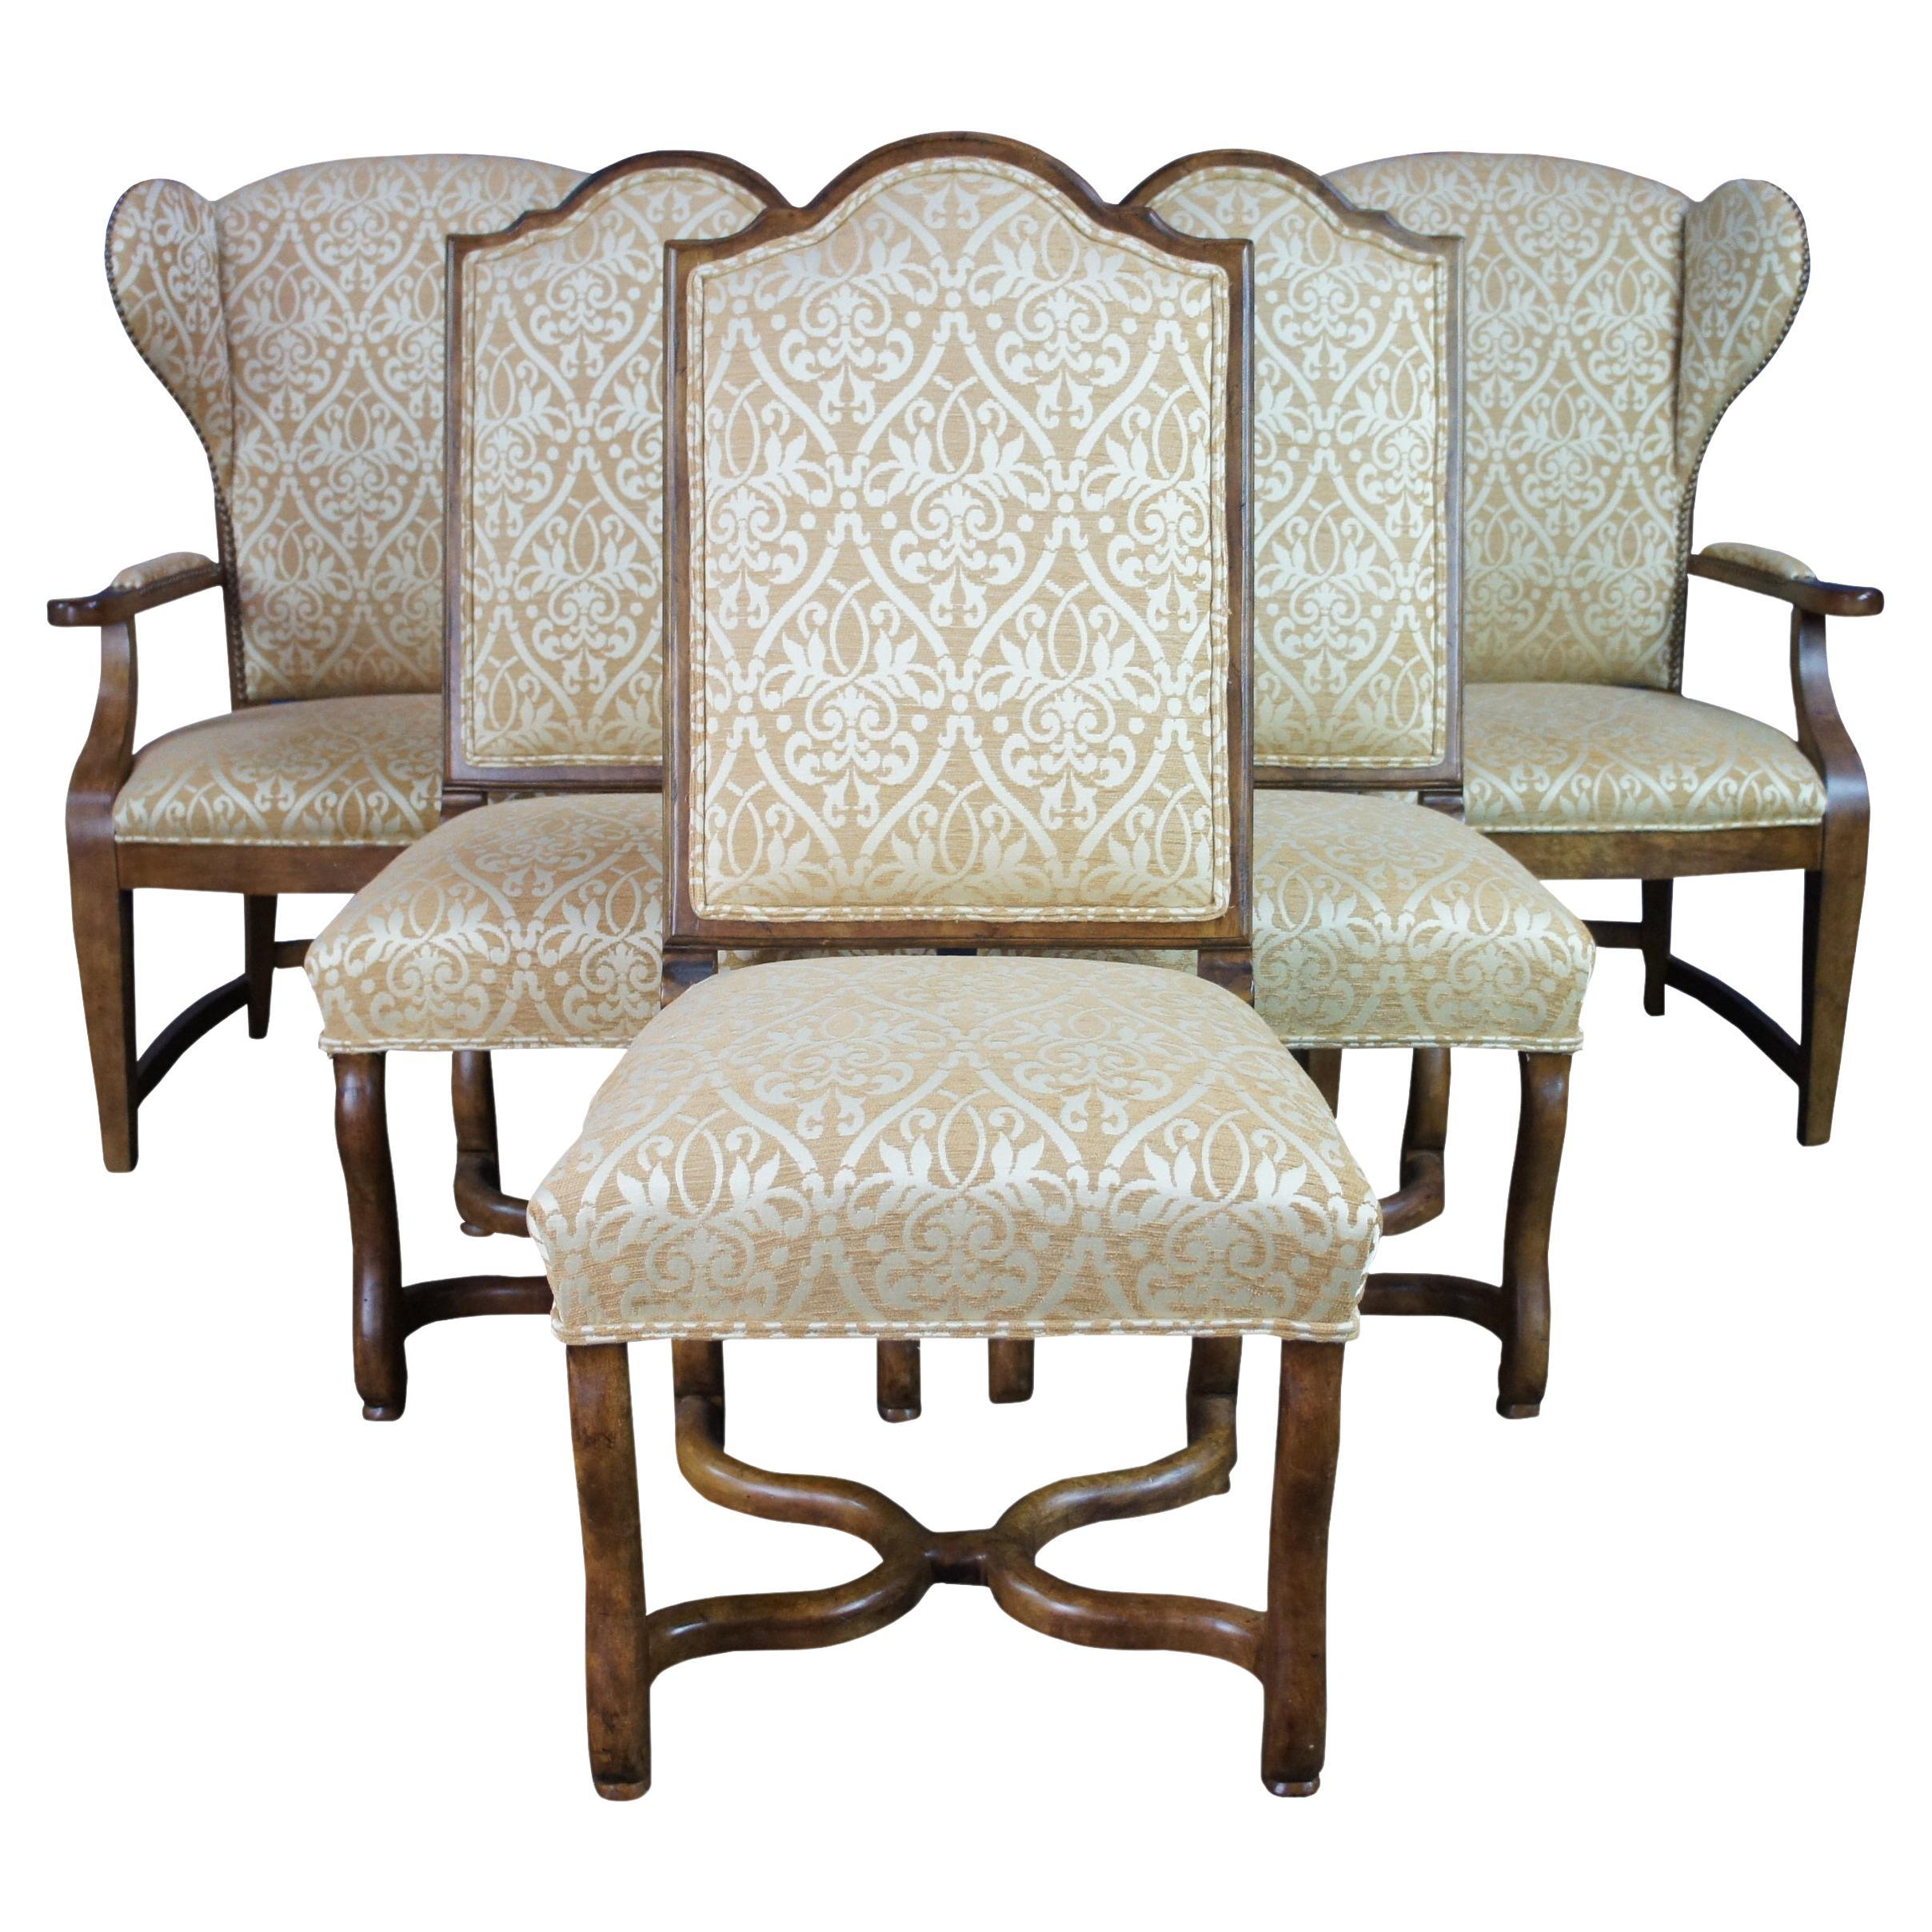 6 Century Furniture Deer Creek Caribou Dining Chairs Old World French Country